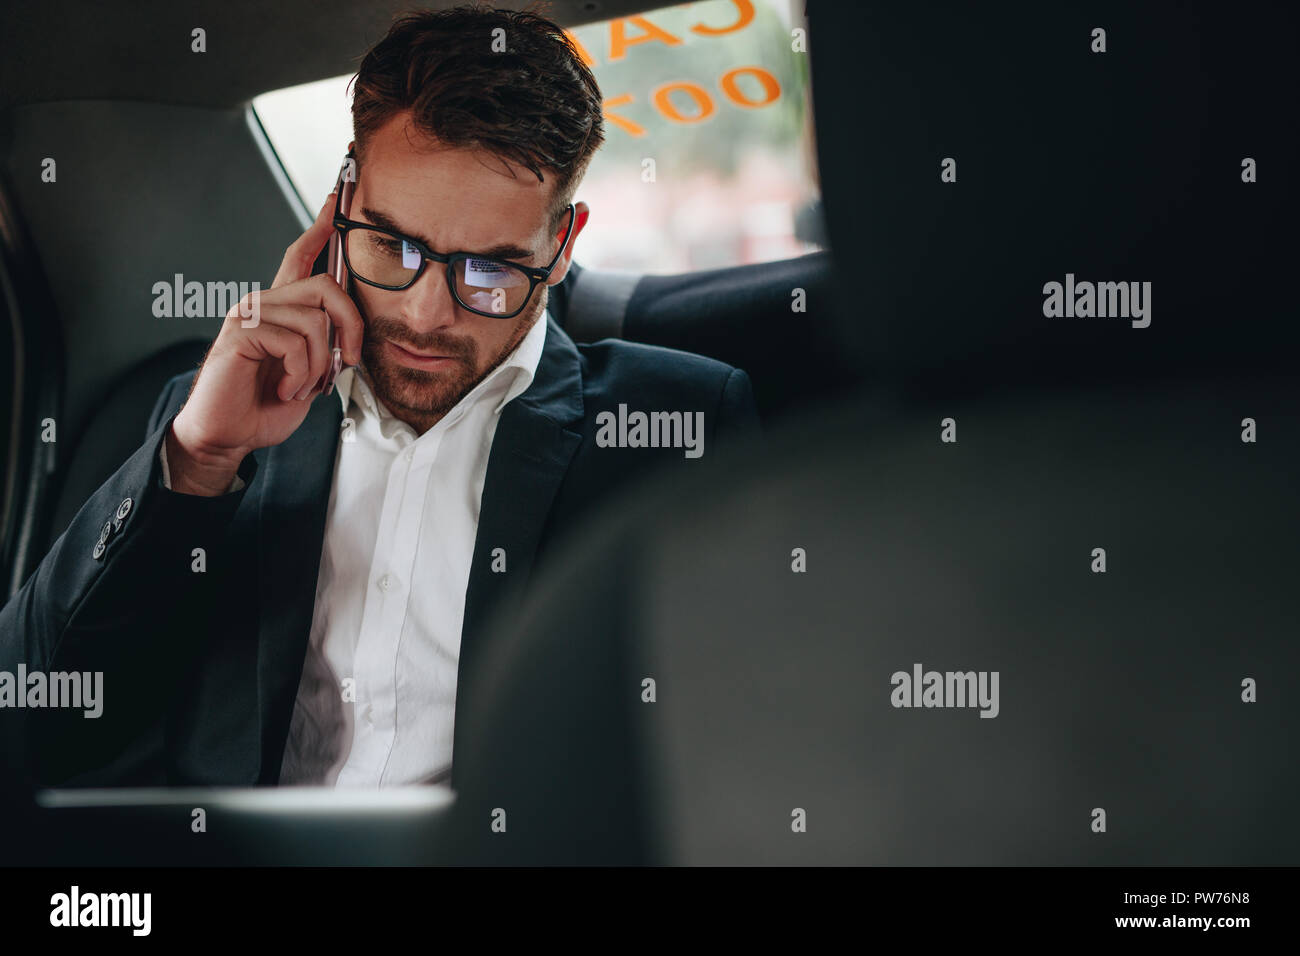 Businessman doing office work while commuting to office in a taxi. Entrepreneur managing business work on the move sitting in a car. - Stock Image